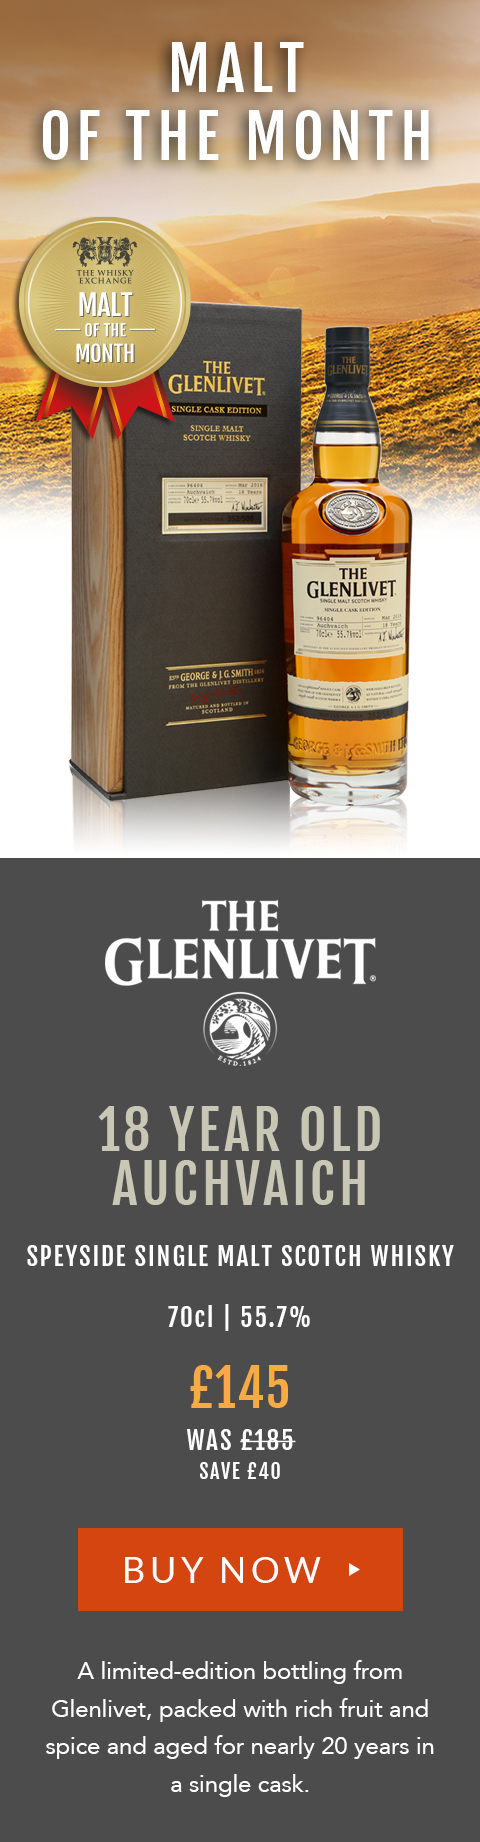 Glenlivet 18 Year Old Auchvaich Speyside Single Malt Scotch Whisky 70cl | 55.7% £145 (was £185) save £40 A limited-edition bottling from Glenlivet, packed with rich fruit and spice and aged for nearly 20 years in a single cask.